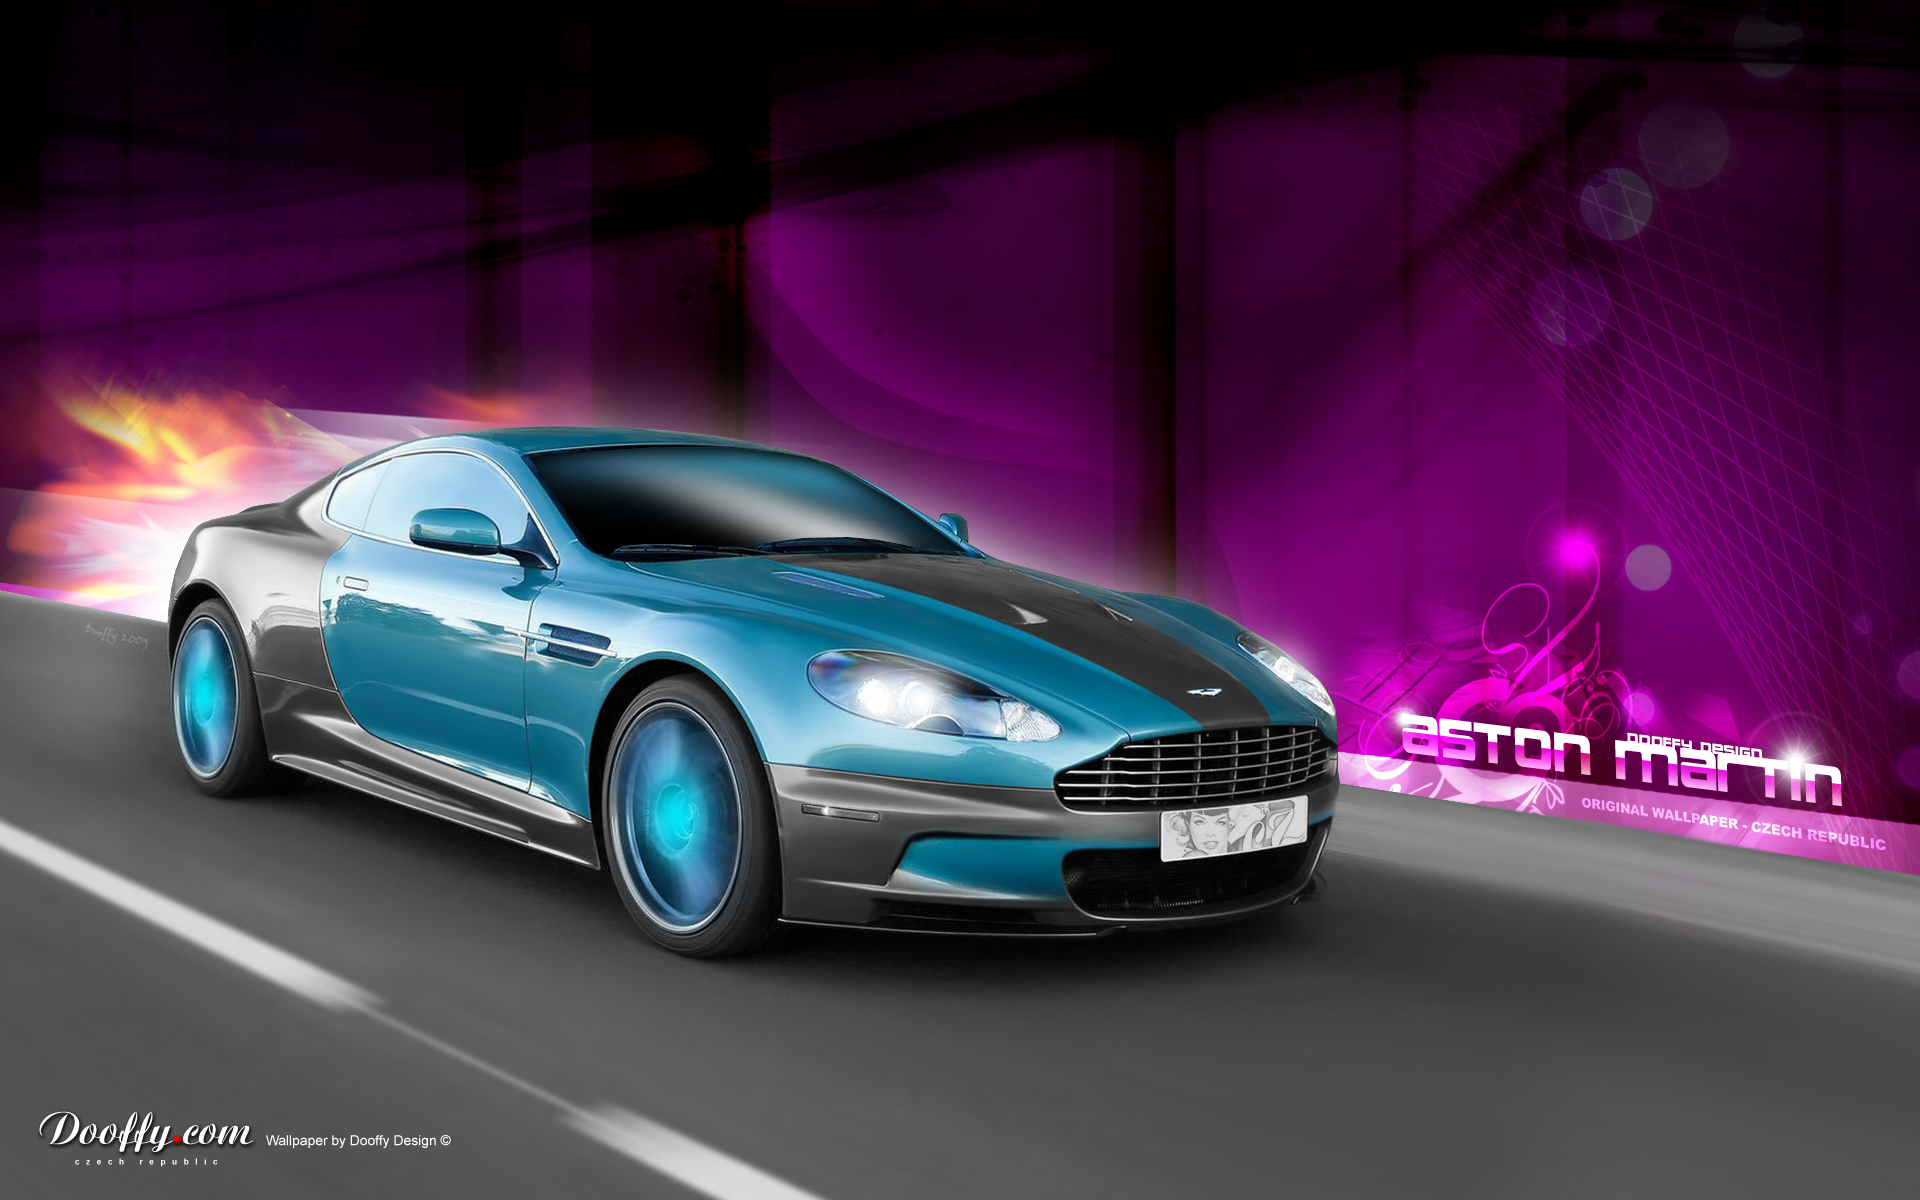 ASTON MARTIN - Wallpaper